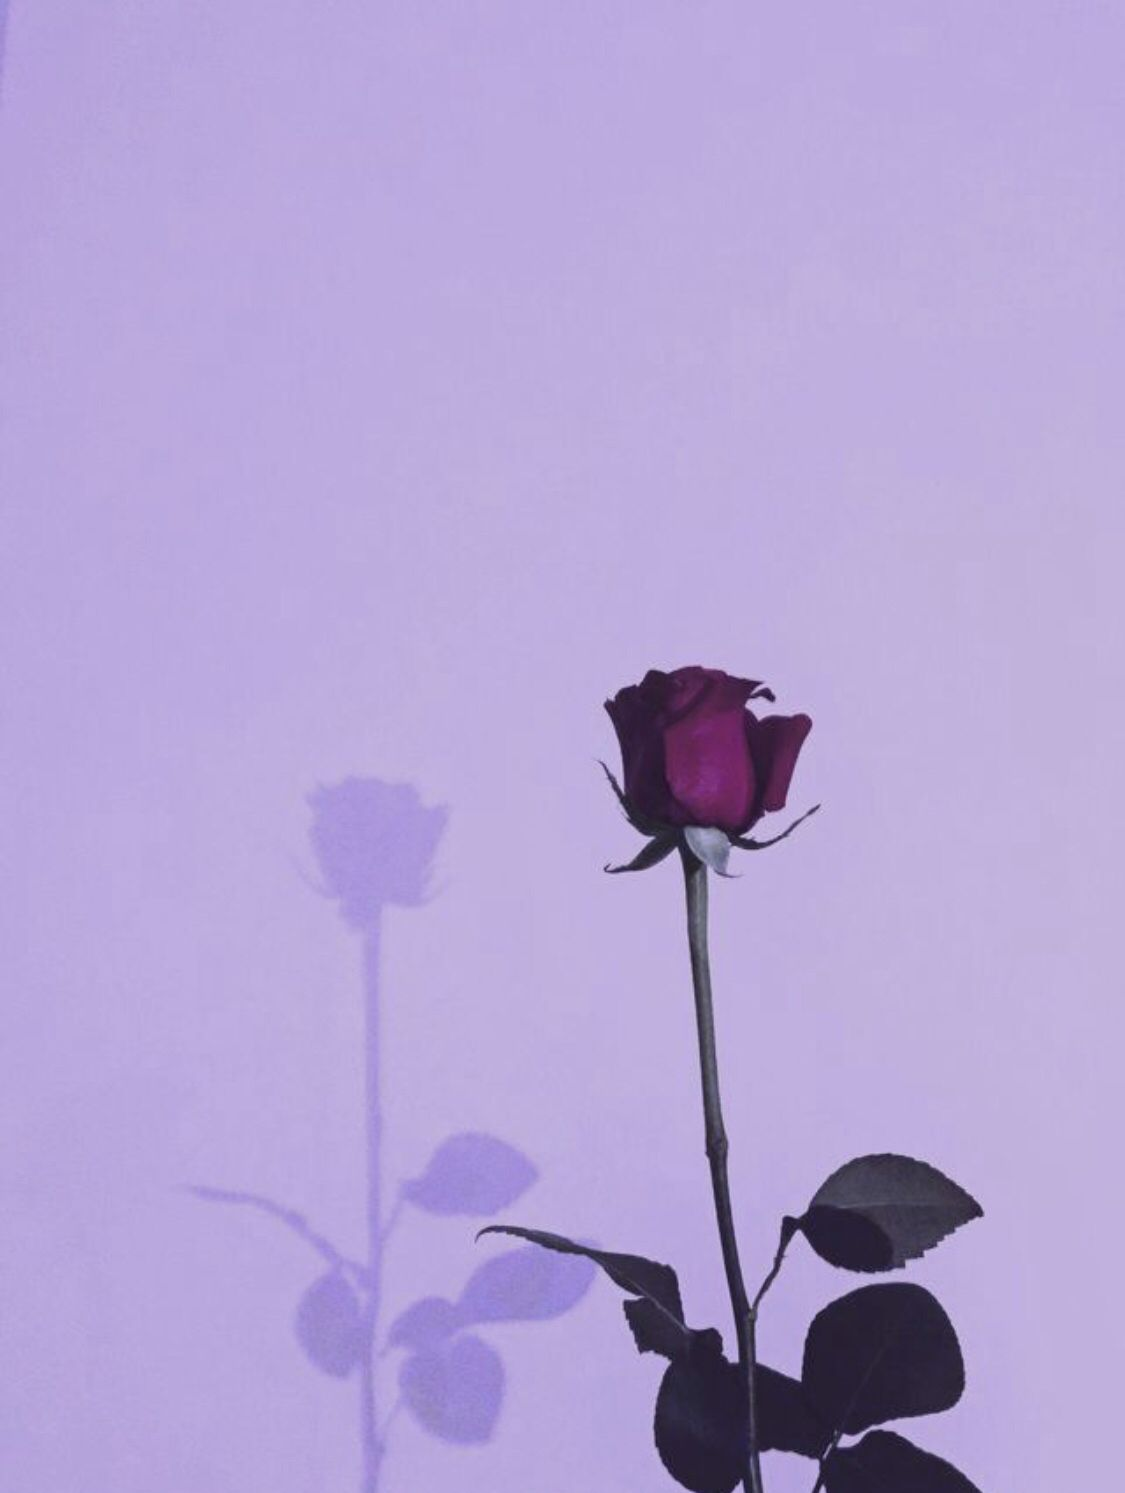 Aesthetic Pinterest Pictures Purple | Quotes and Wallpaper K